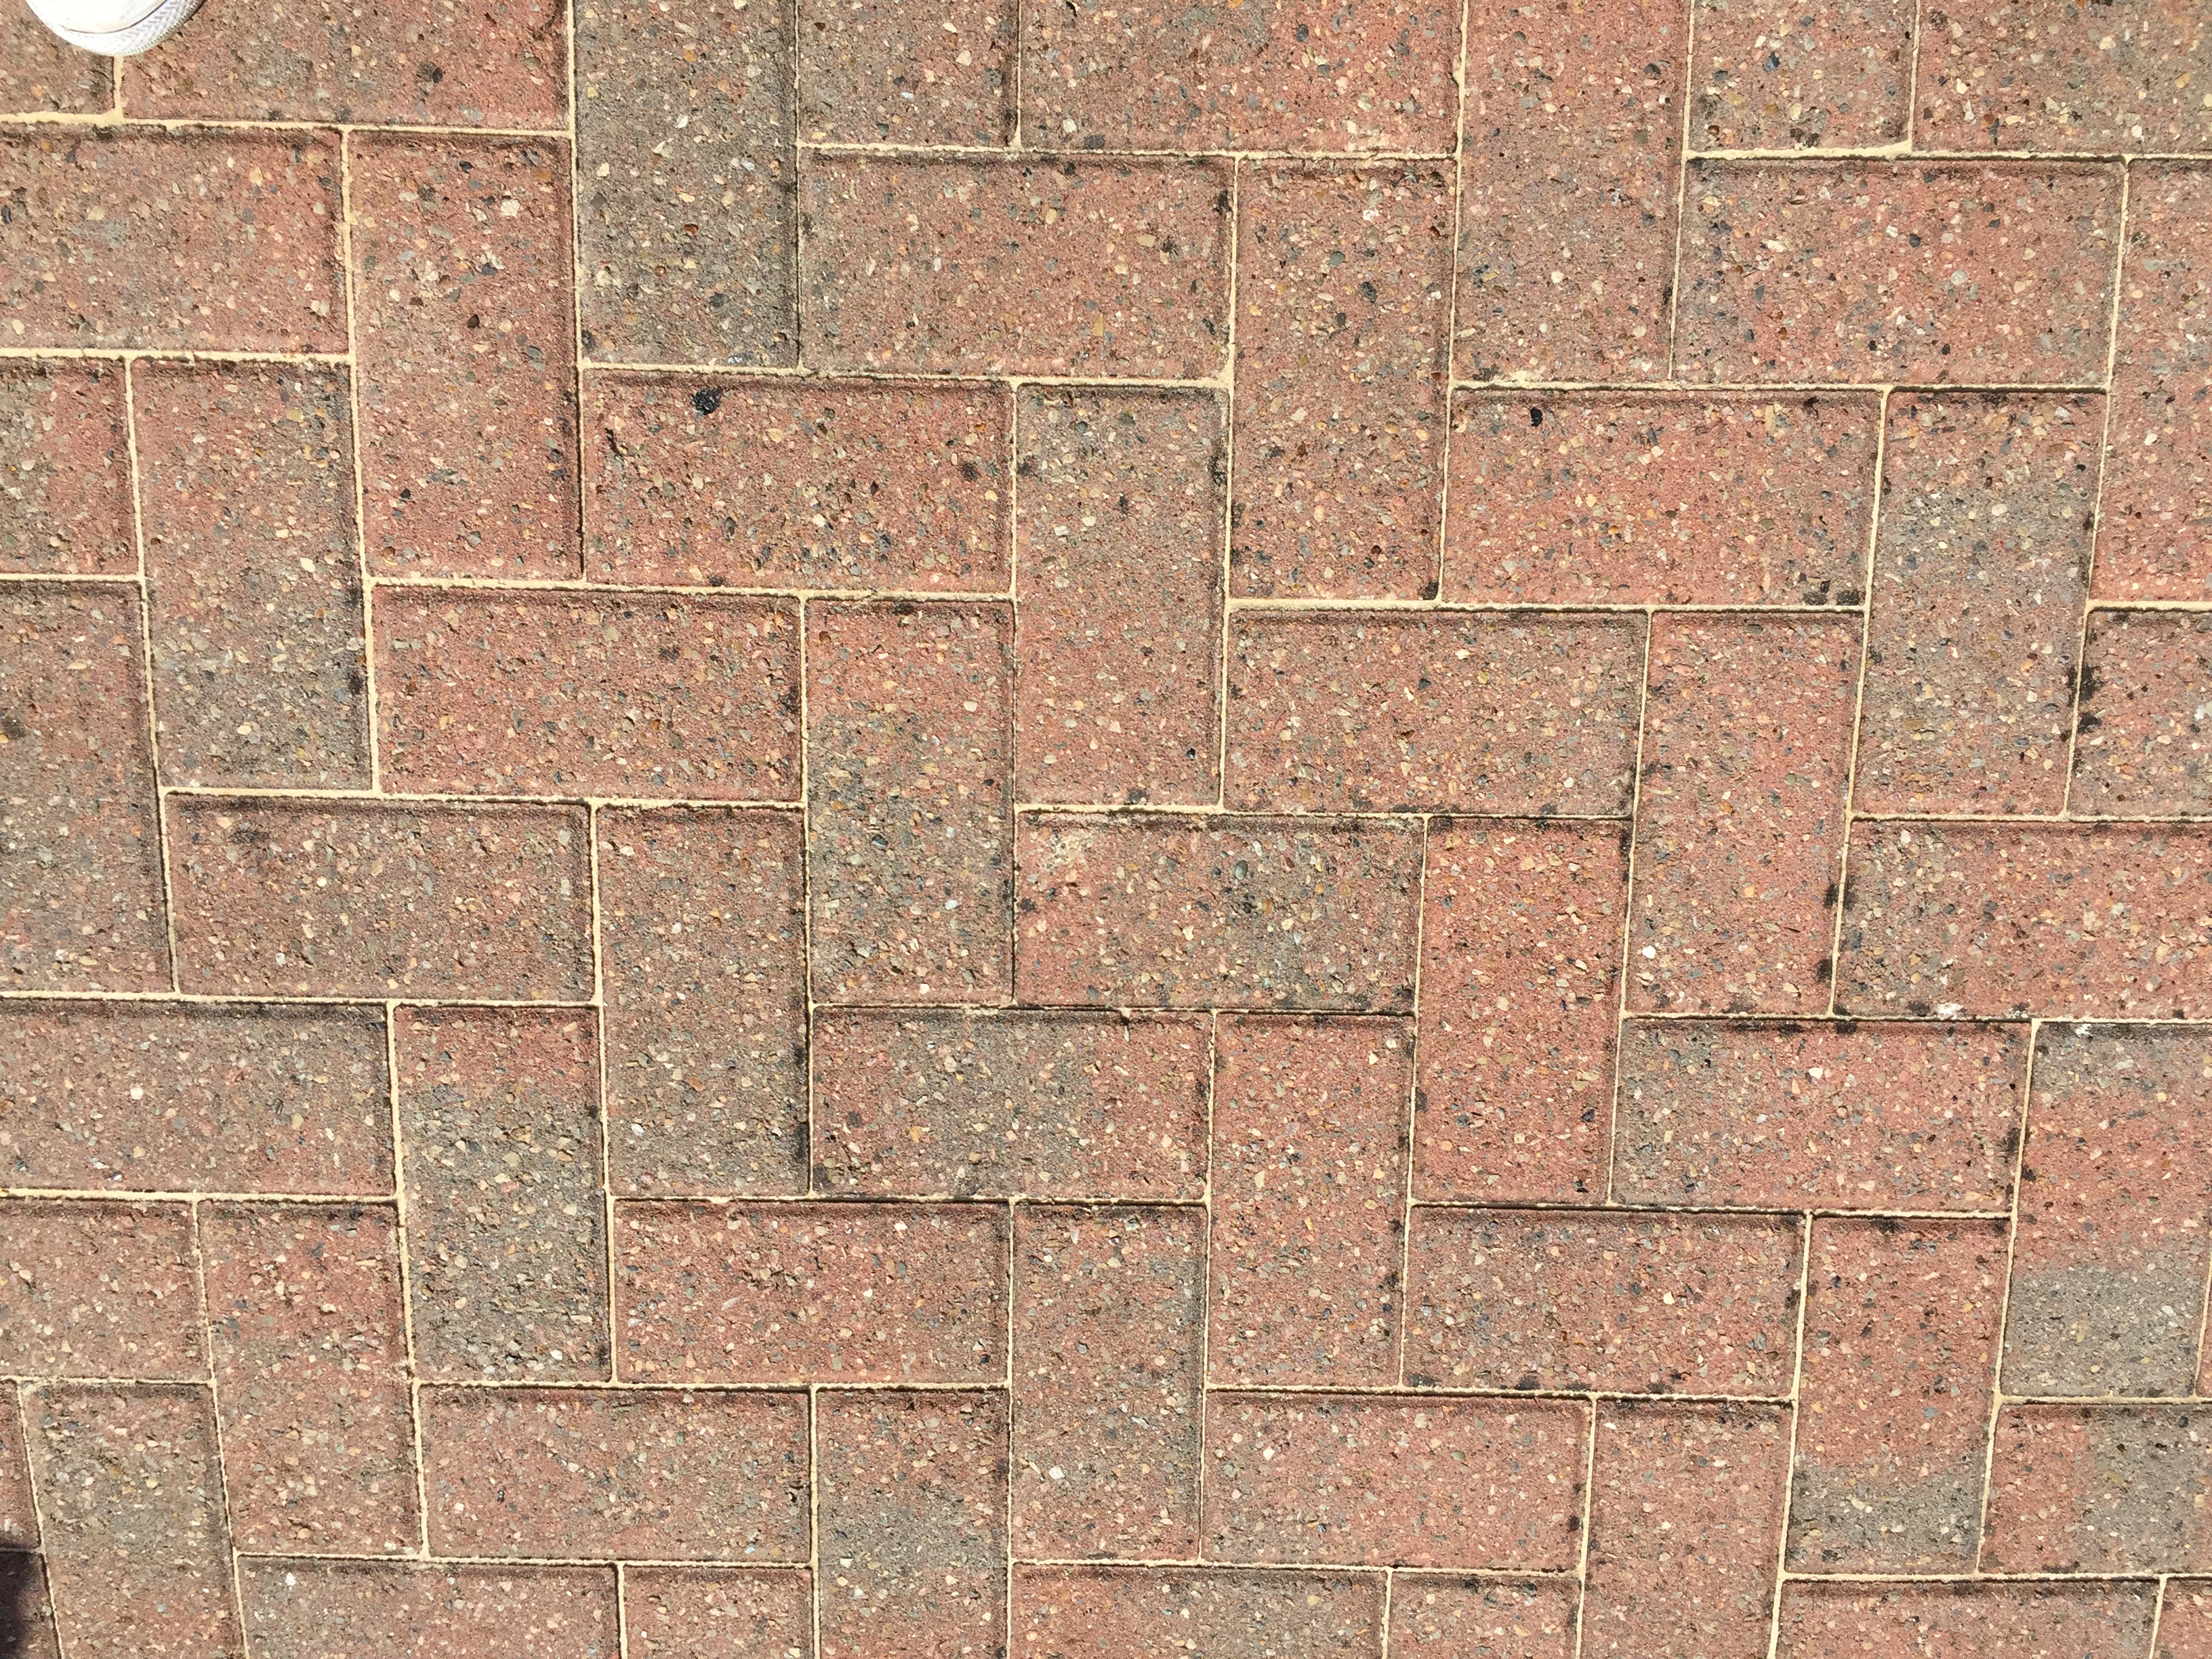 Paving cleaning